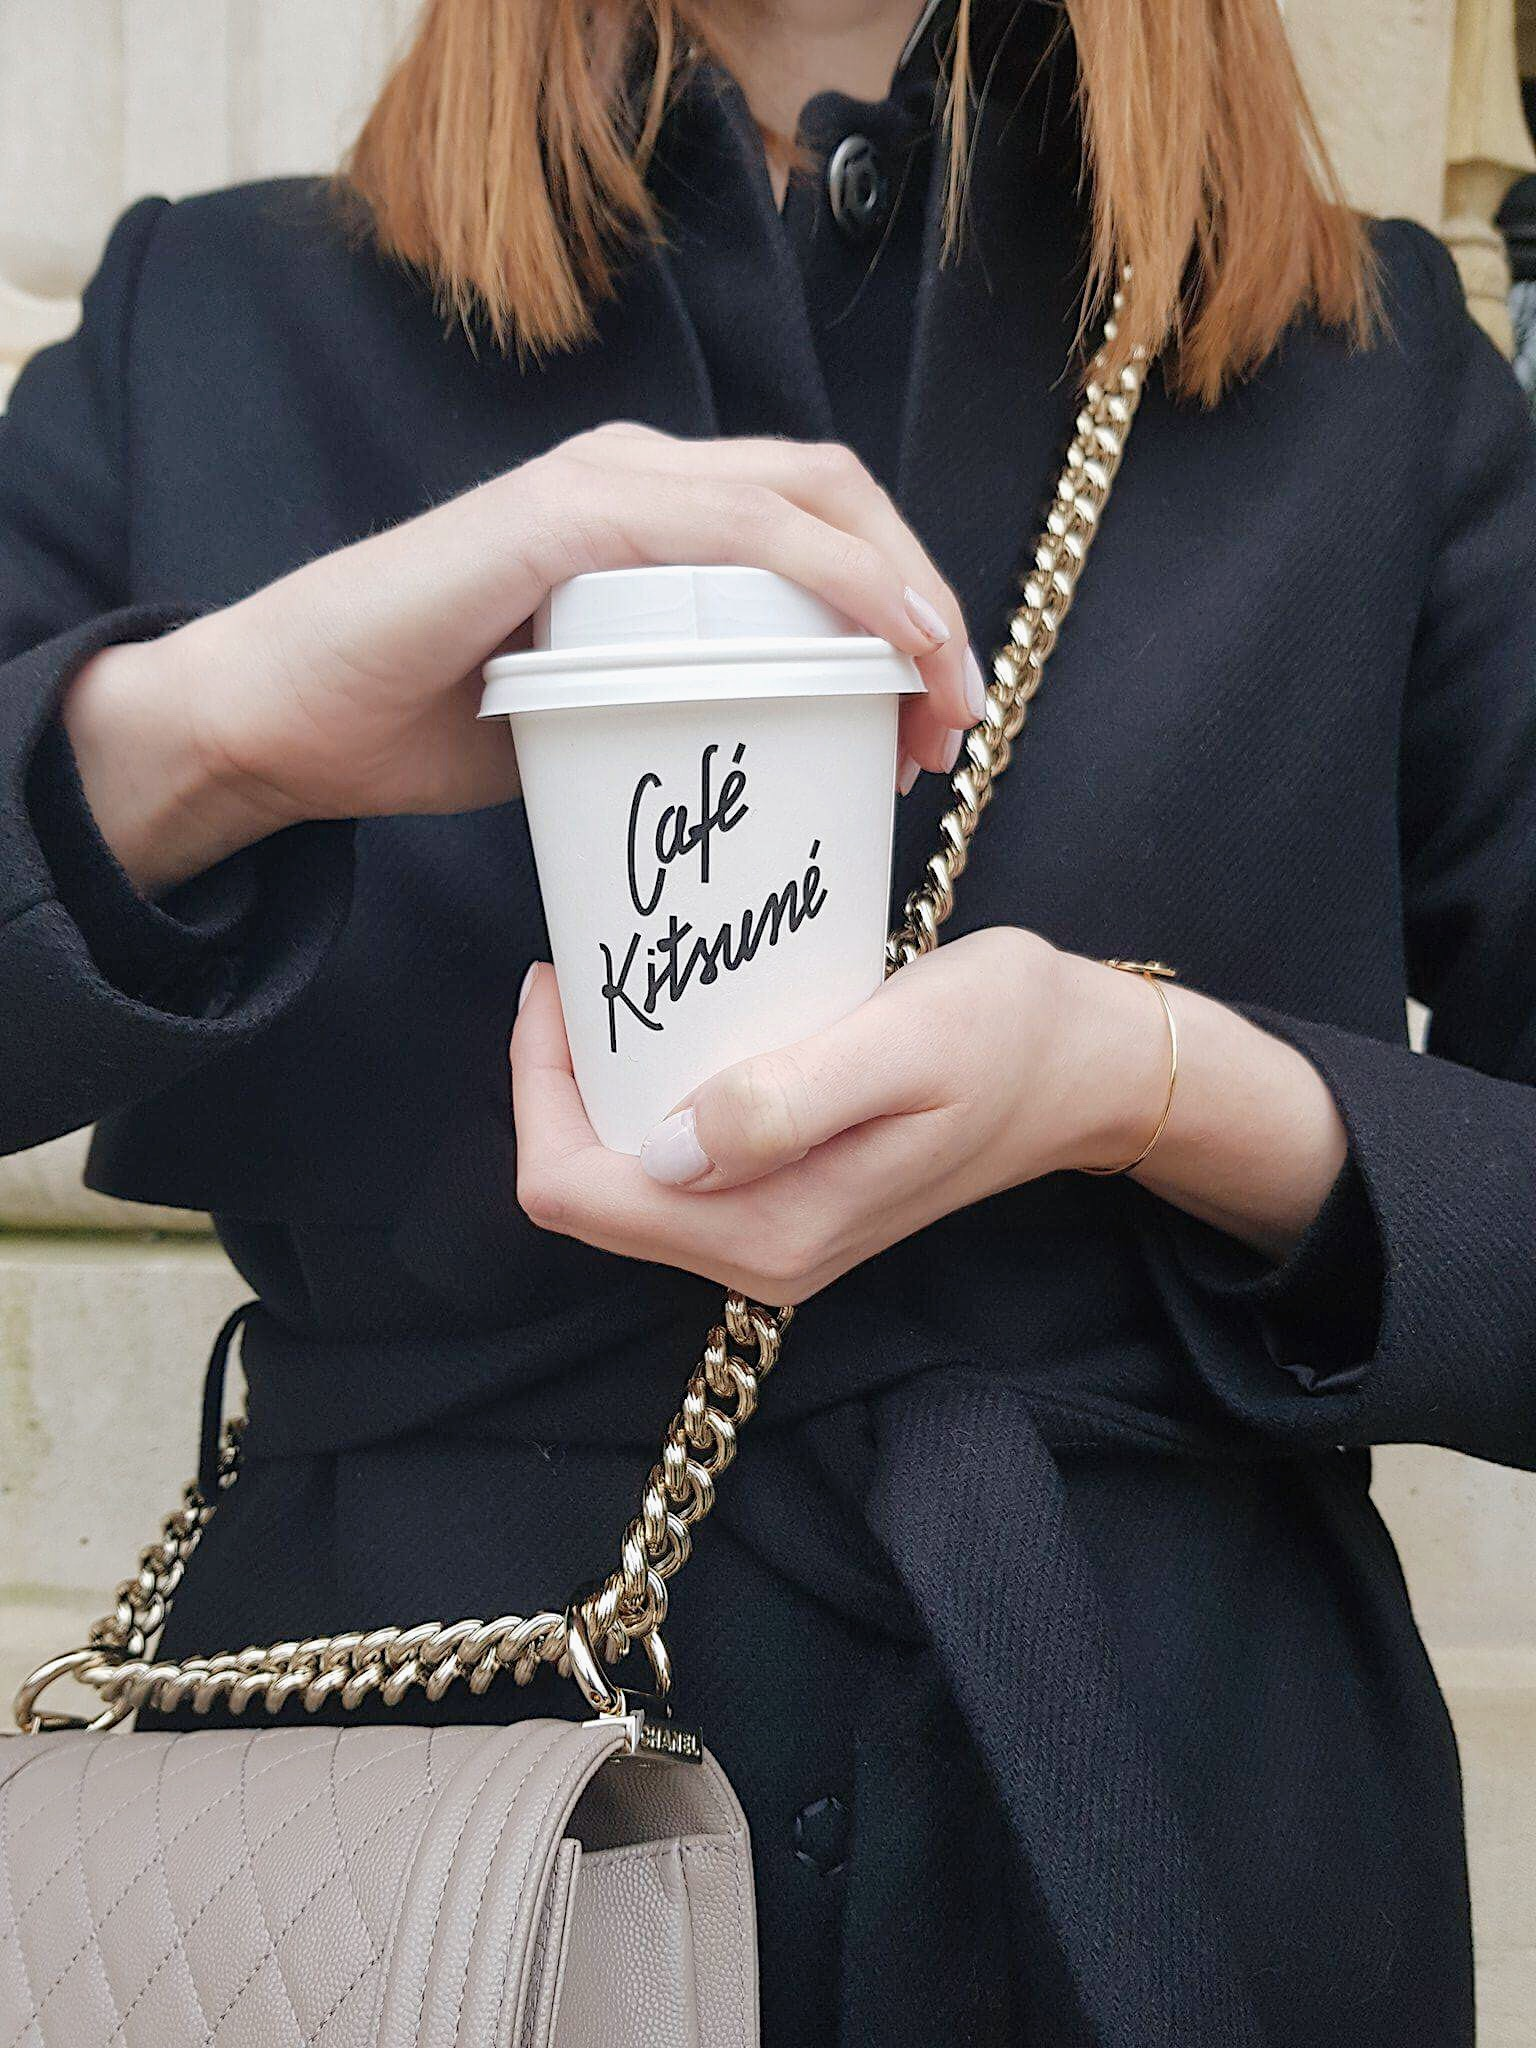 A Vegan Girls Weekend to Paris | Staying at The Hoxton, getting coffee at Cafe Kitsuné, and finding the best vegan eats | Sundays and Somedays